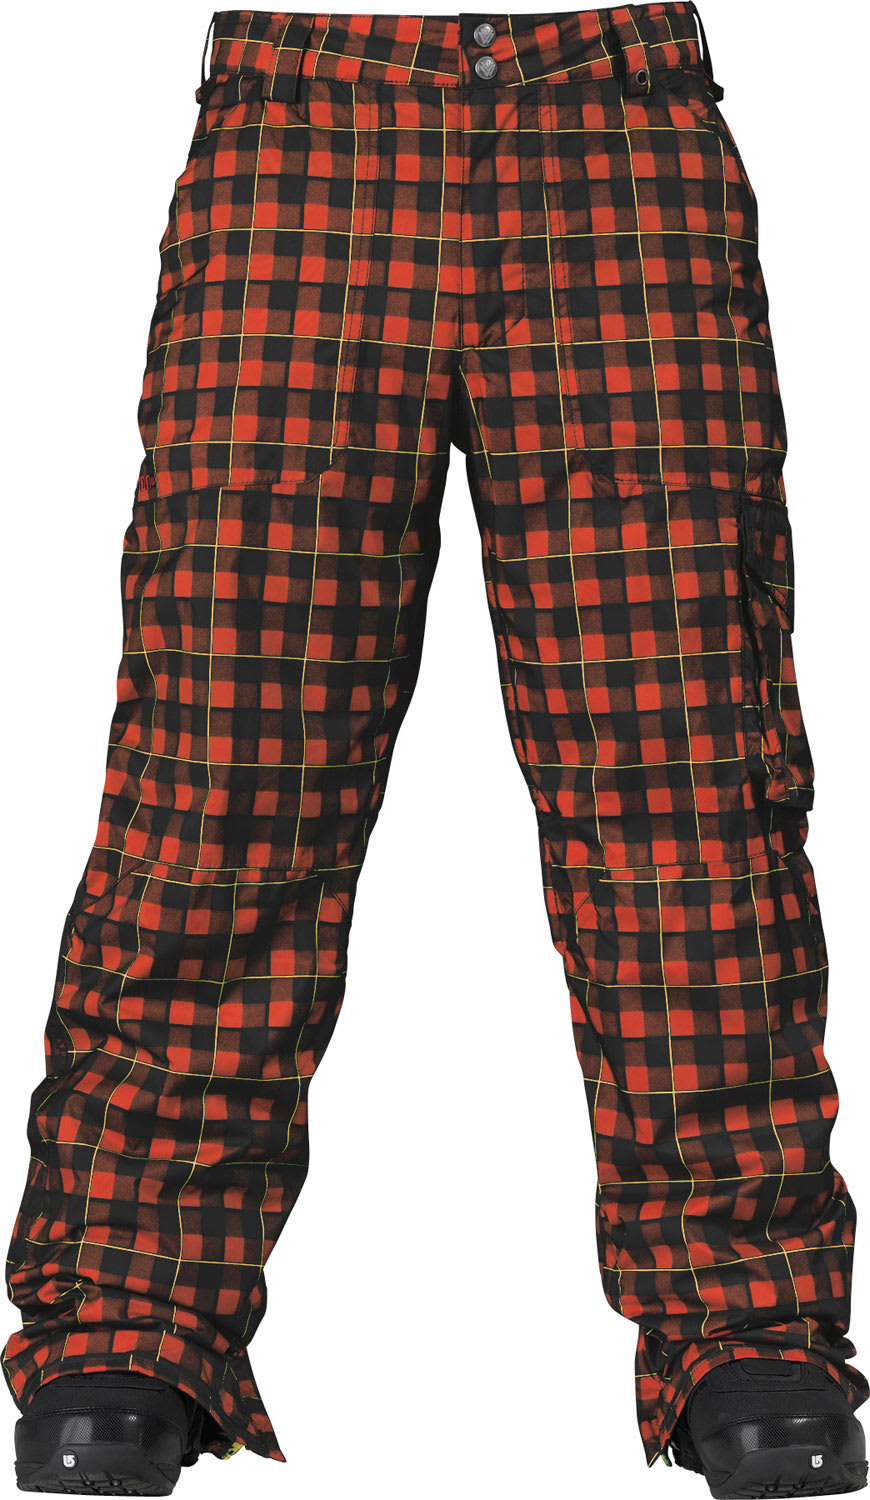 Shop for Burton TWC Smuggler Snowboard Pant Black/Kingdom - Men's